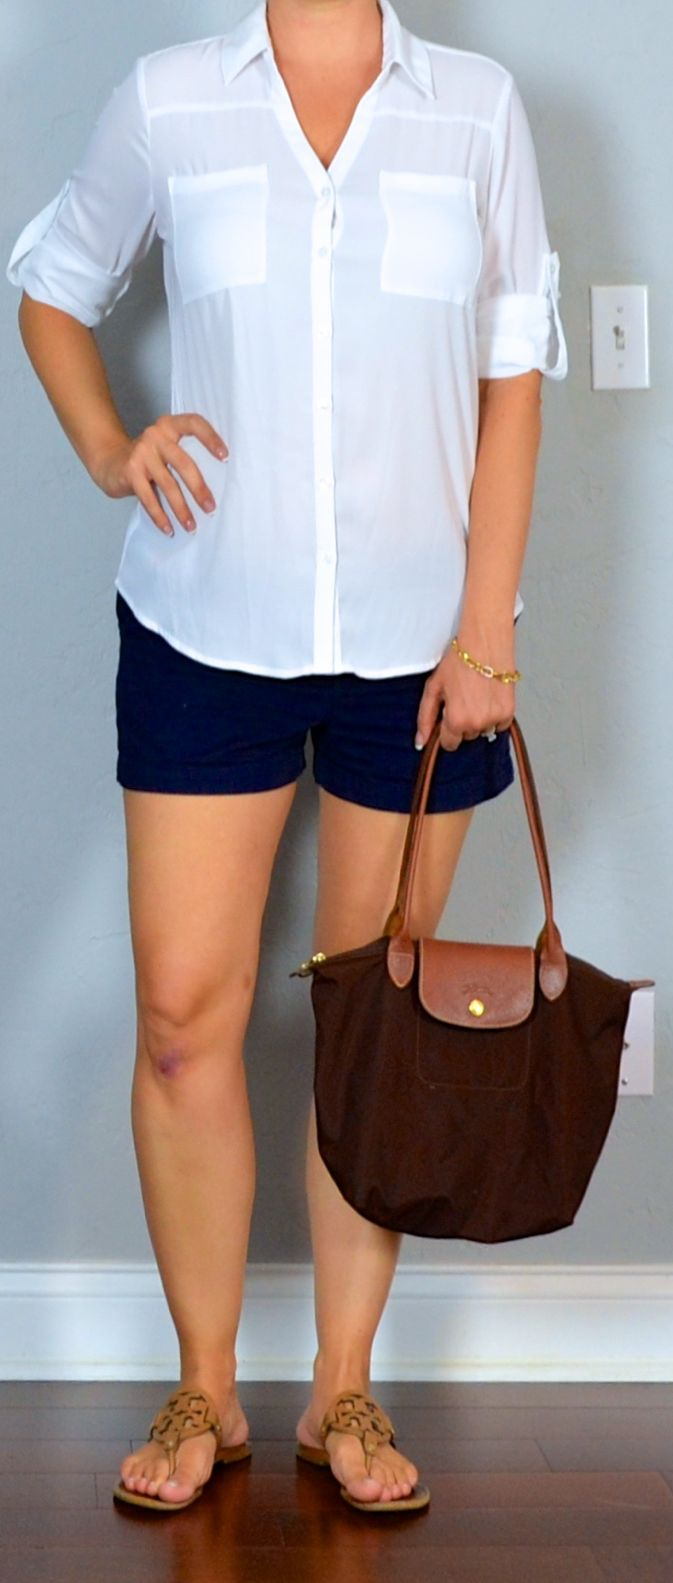 napa/san francisco outfit post: white portofino shirt, navy shorts